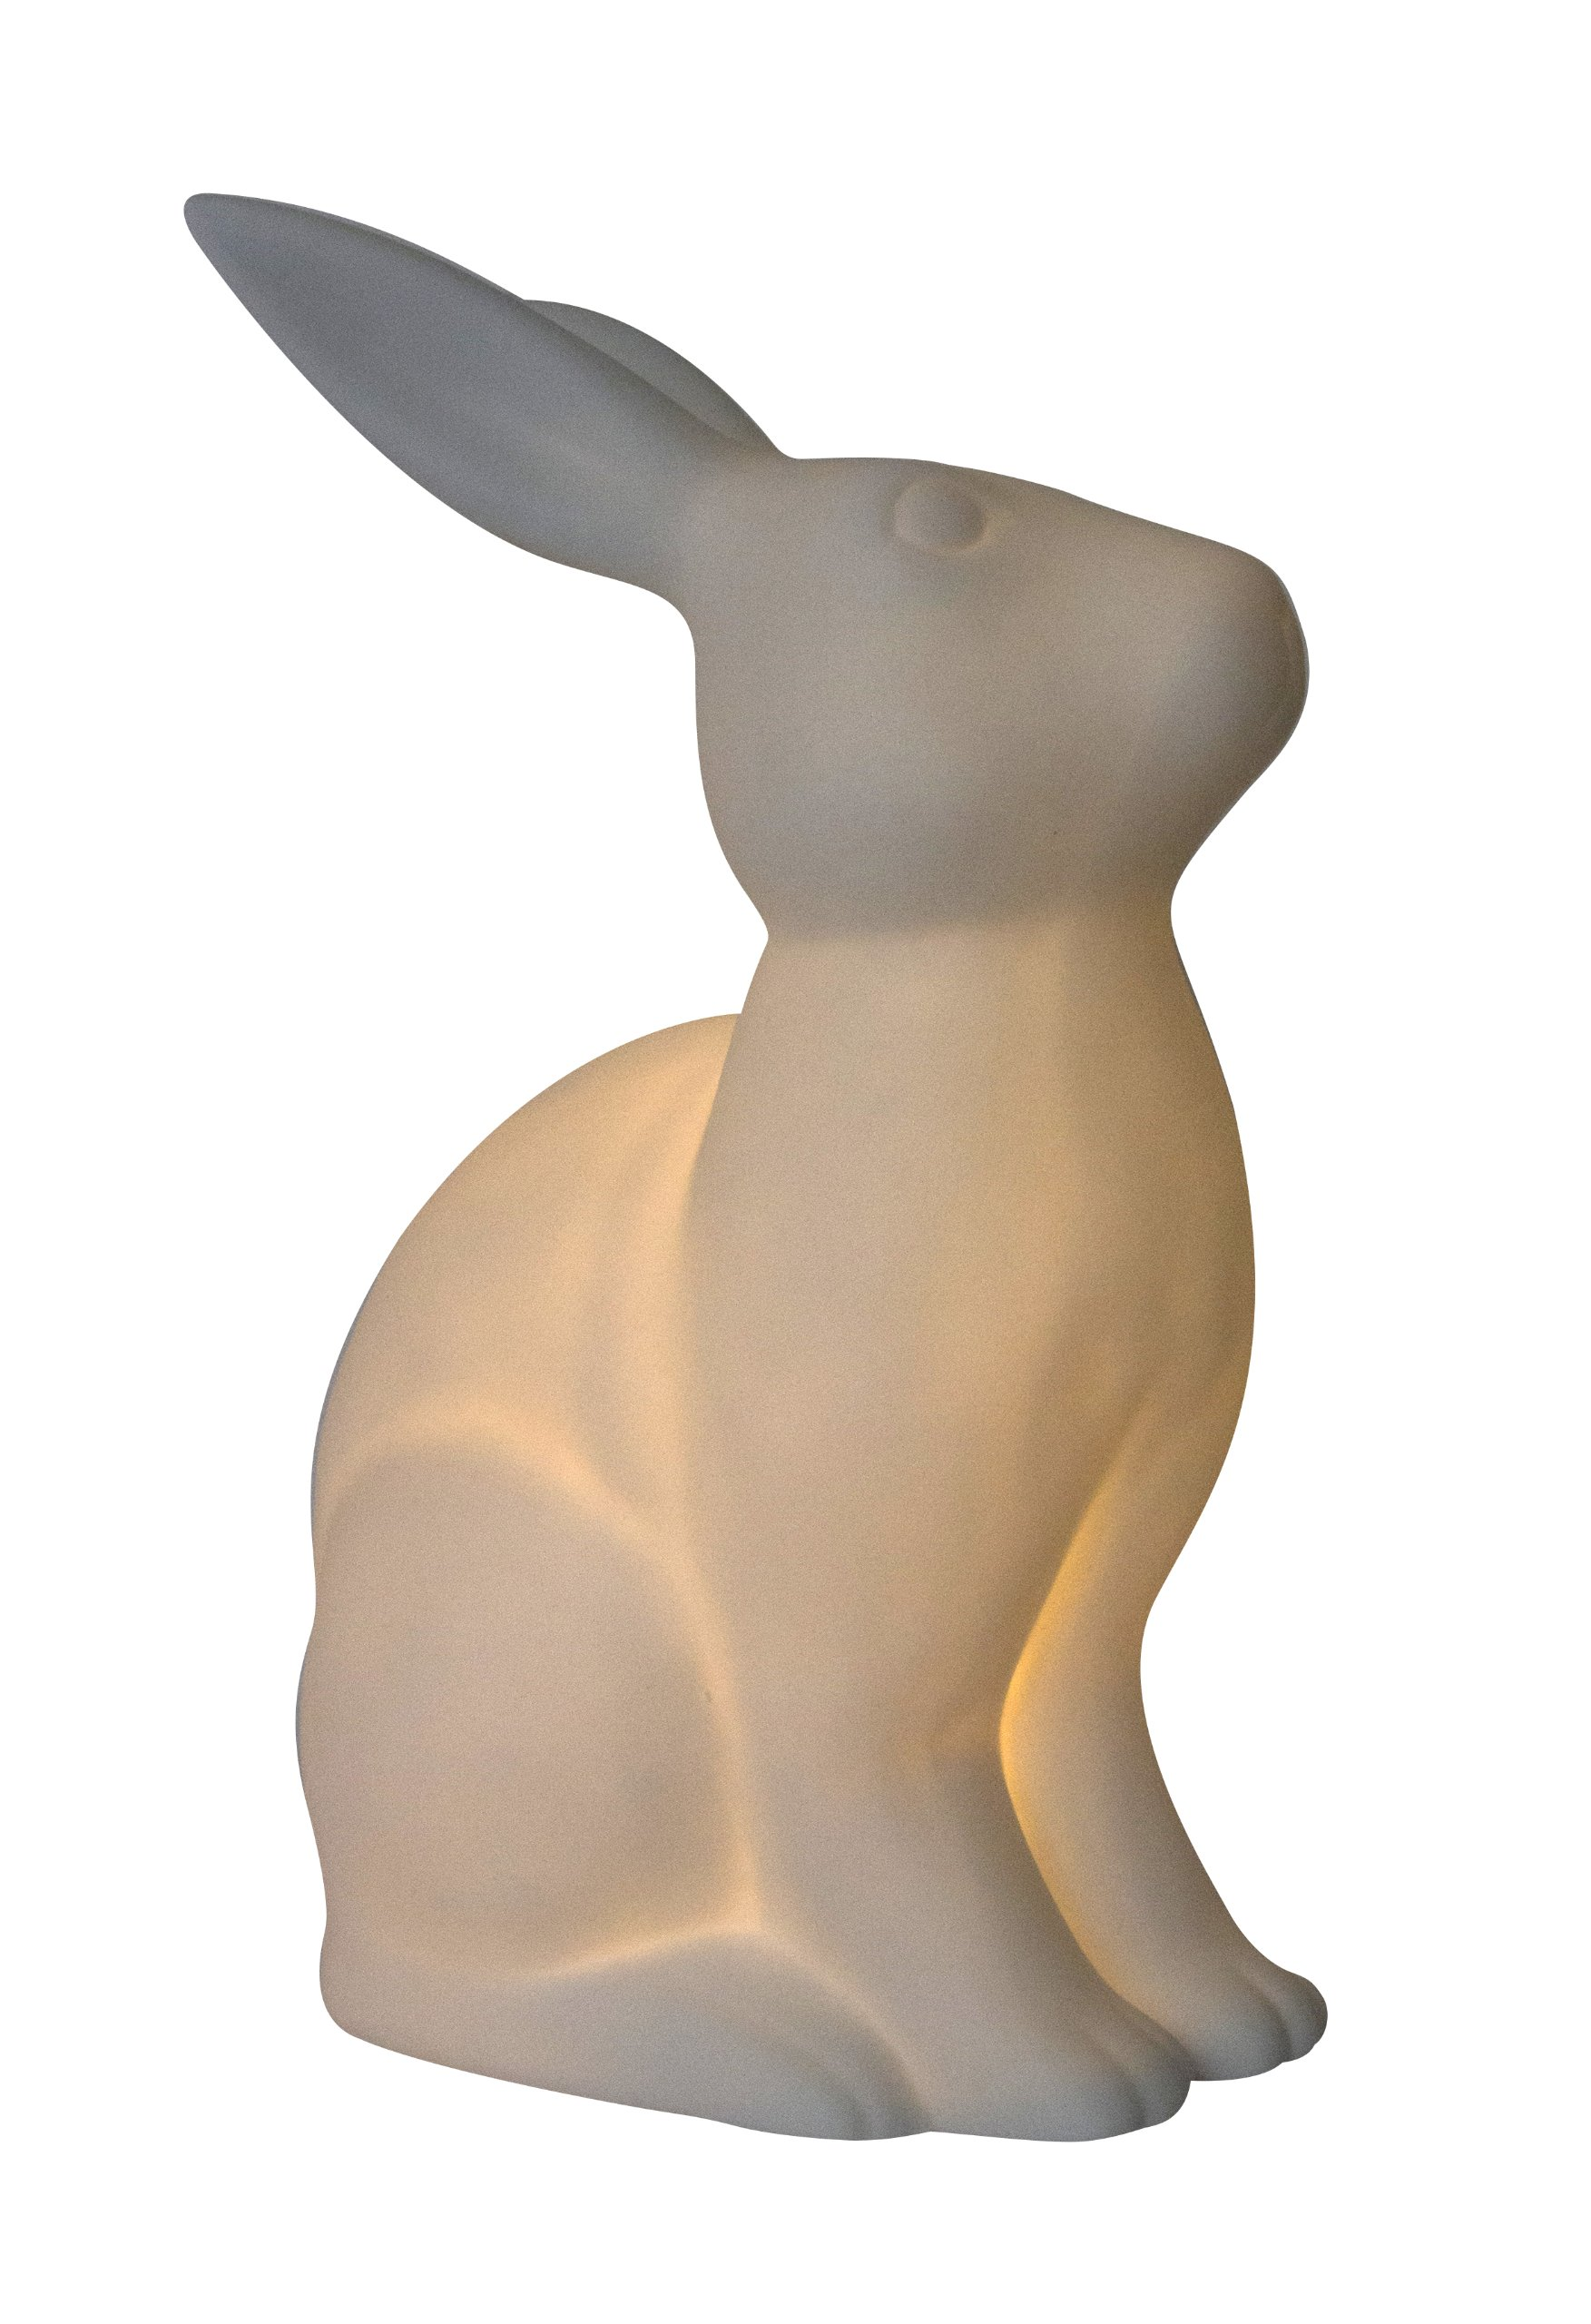 Simple Designs LT3058-WHT White Porcelain Animal Shaped Table Lamp, Bunny Rabbit